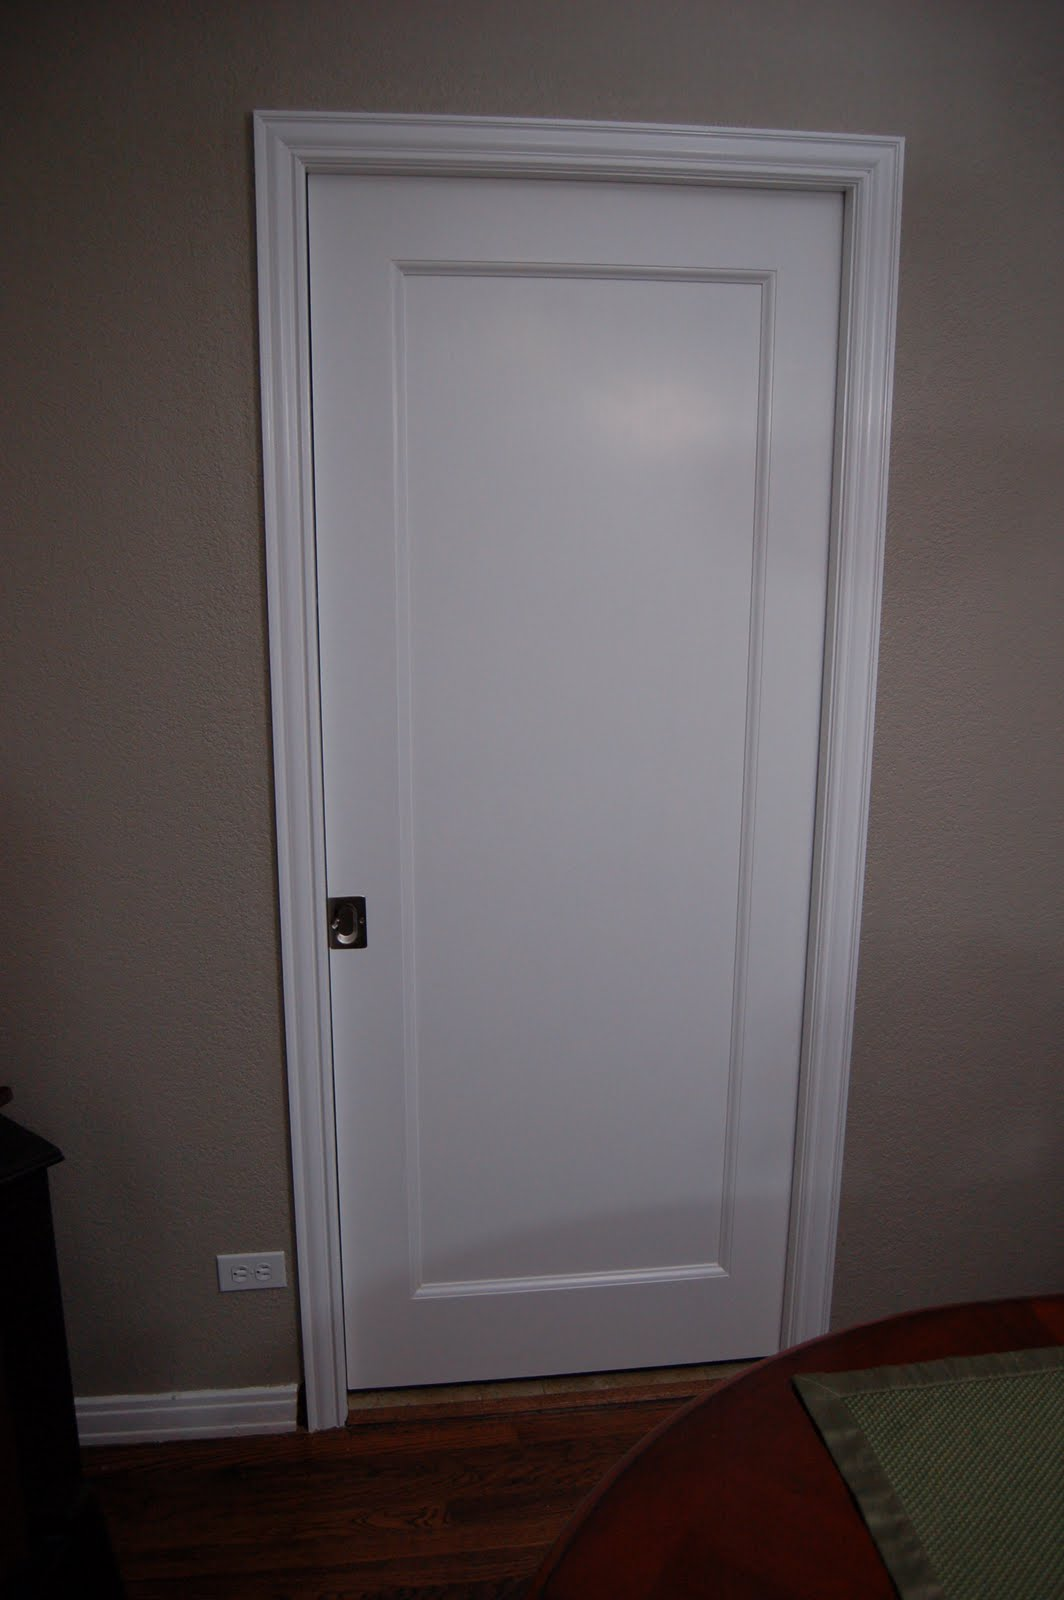 House designs school pocket door installation for Door installation